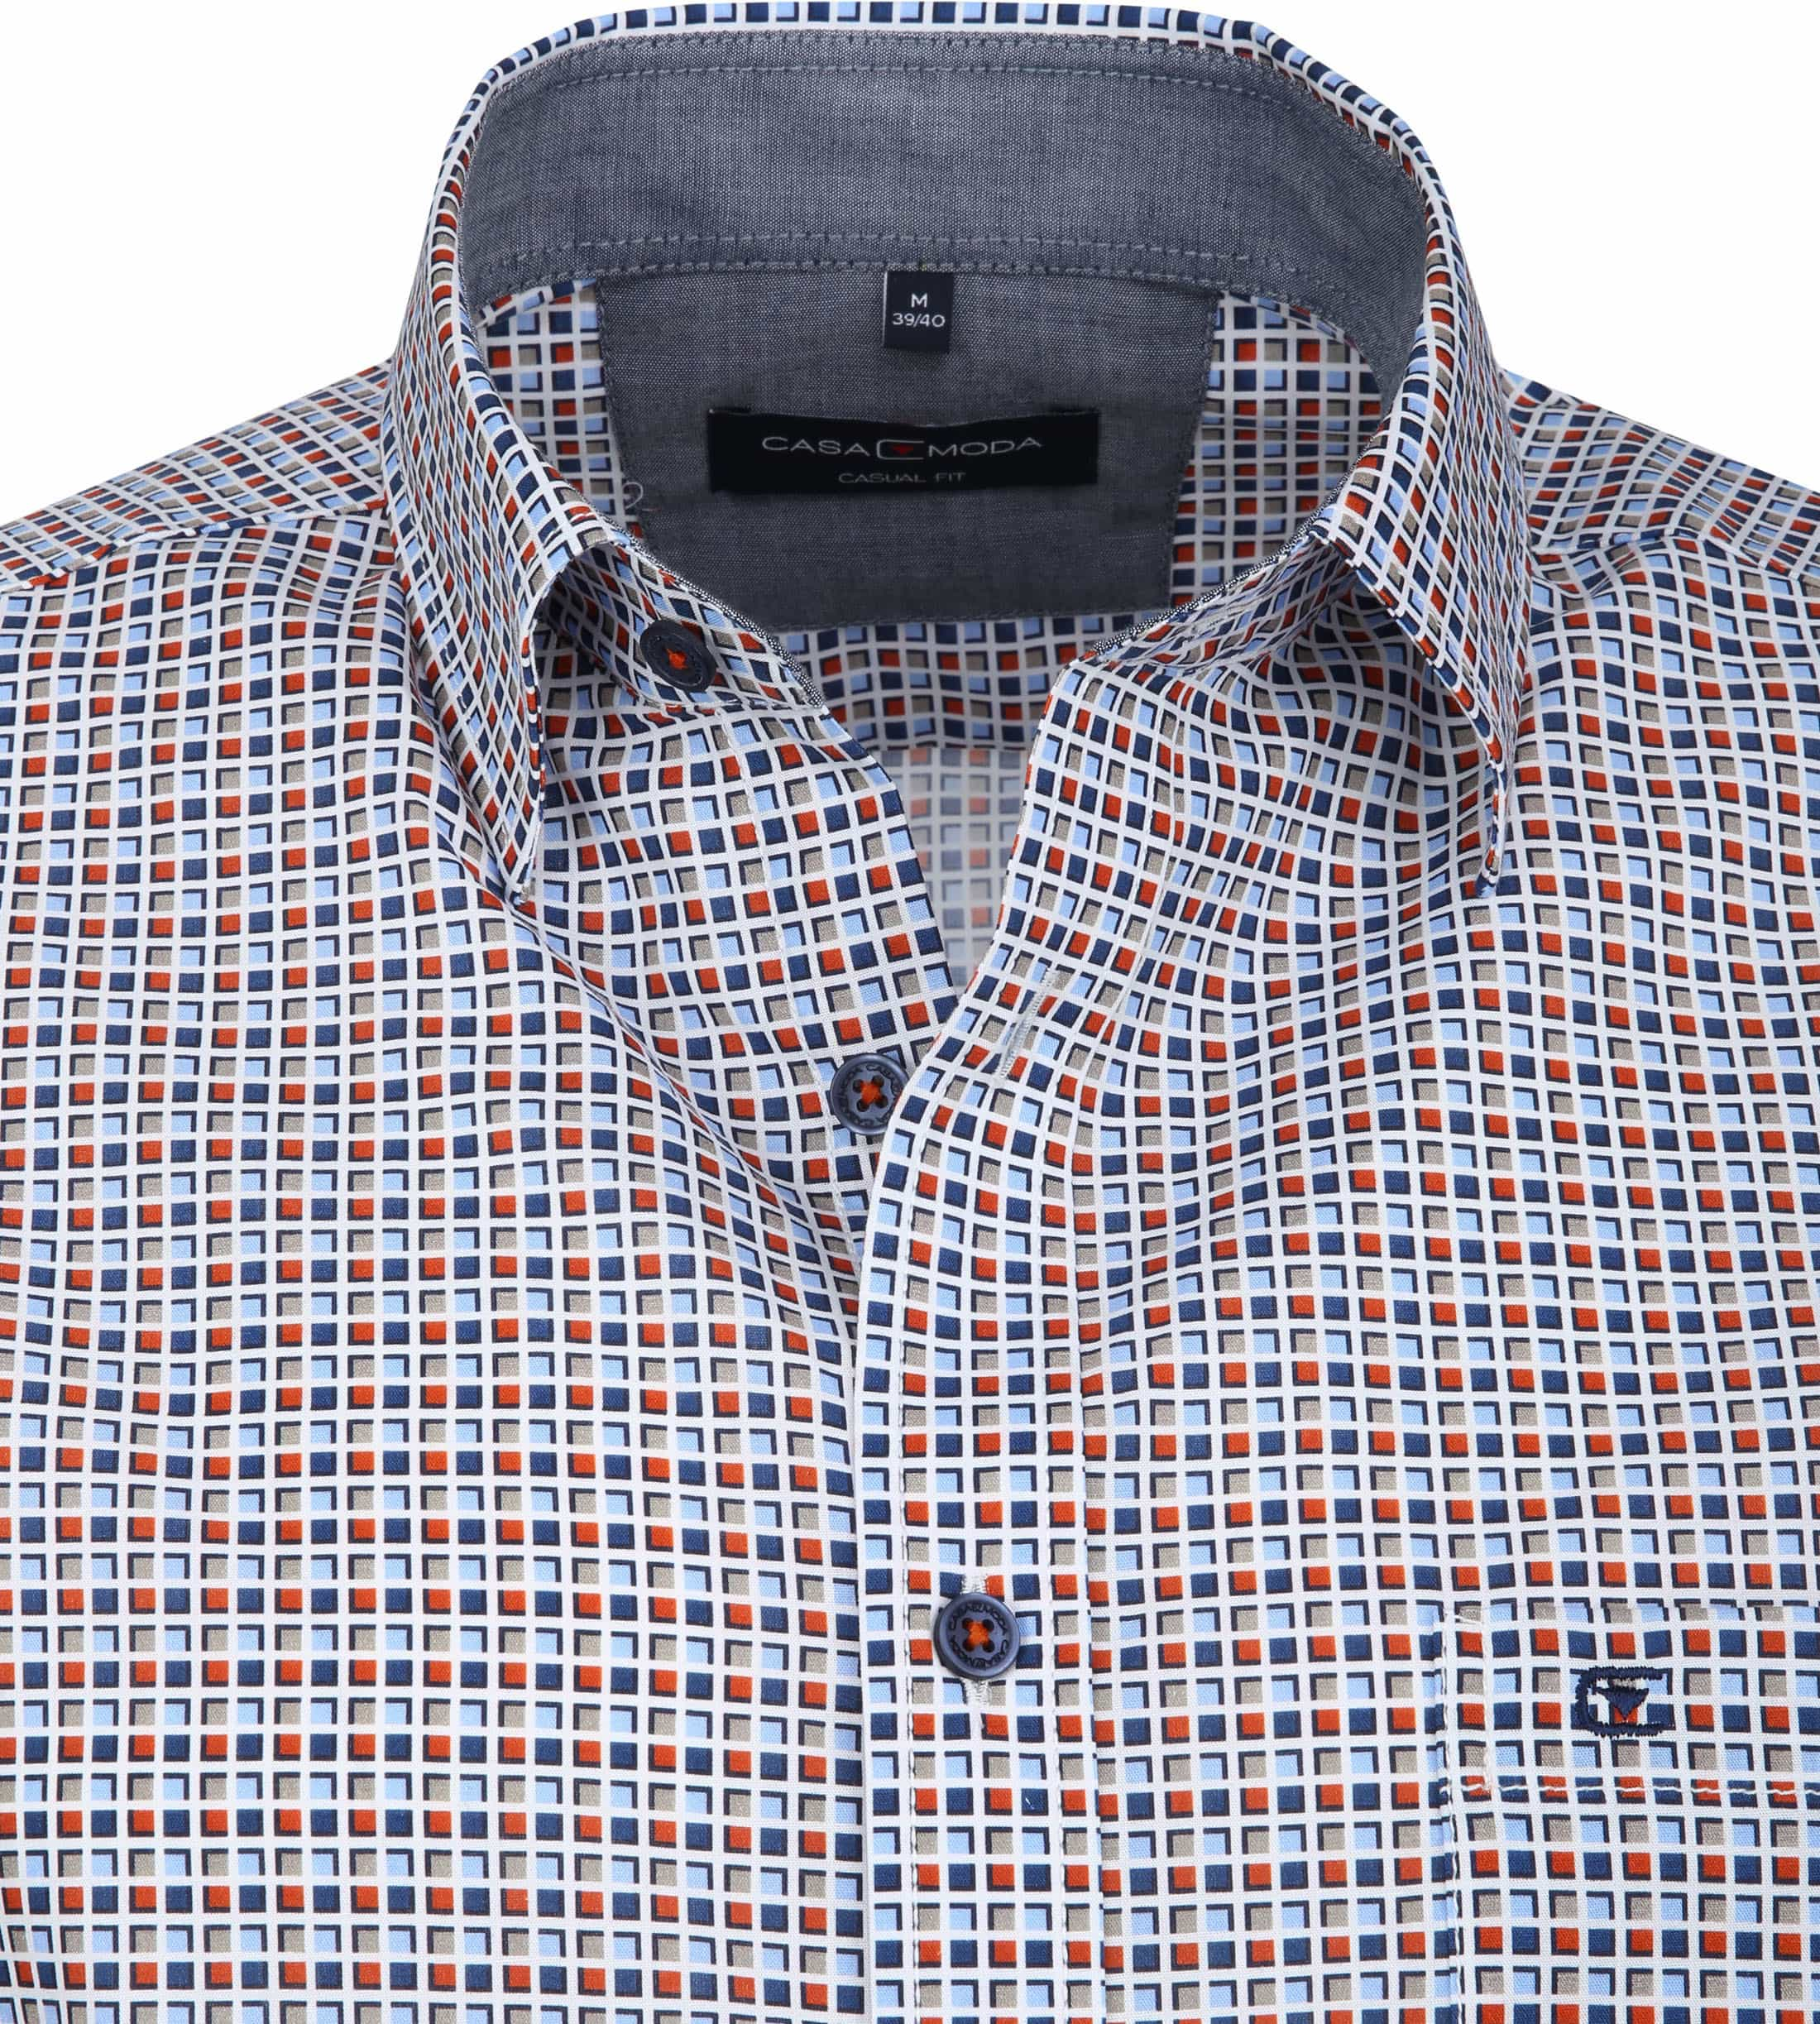 Casa Moda Casual Shirt Squares photo 1